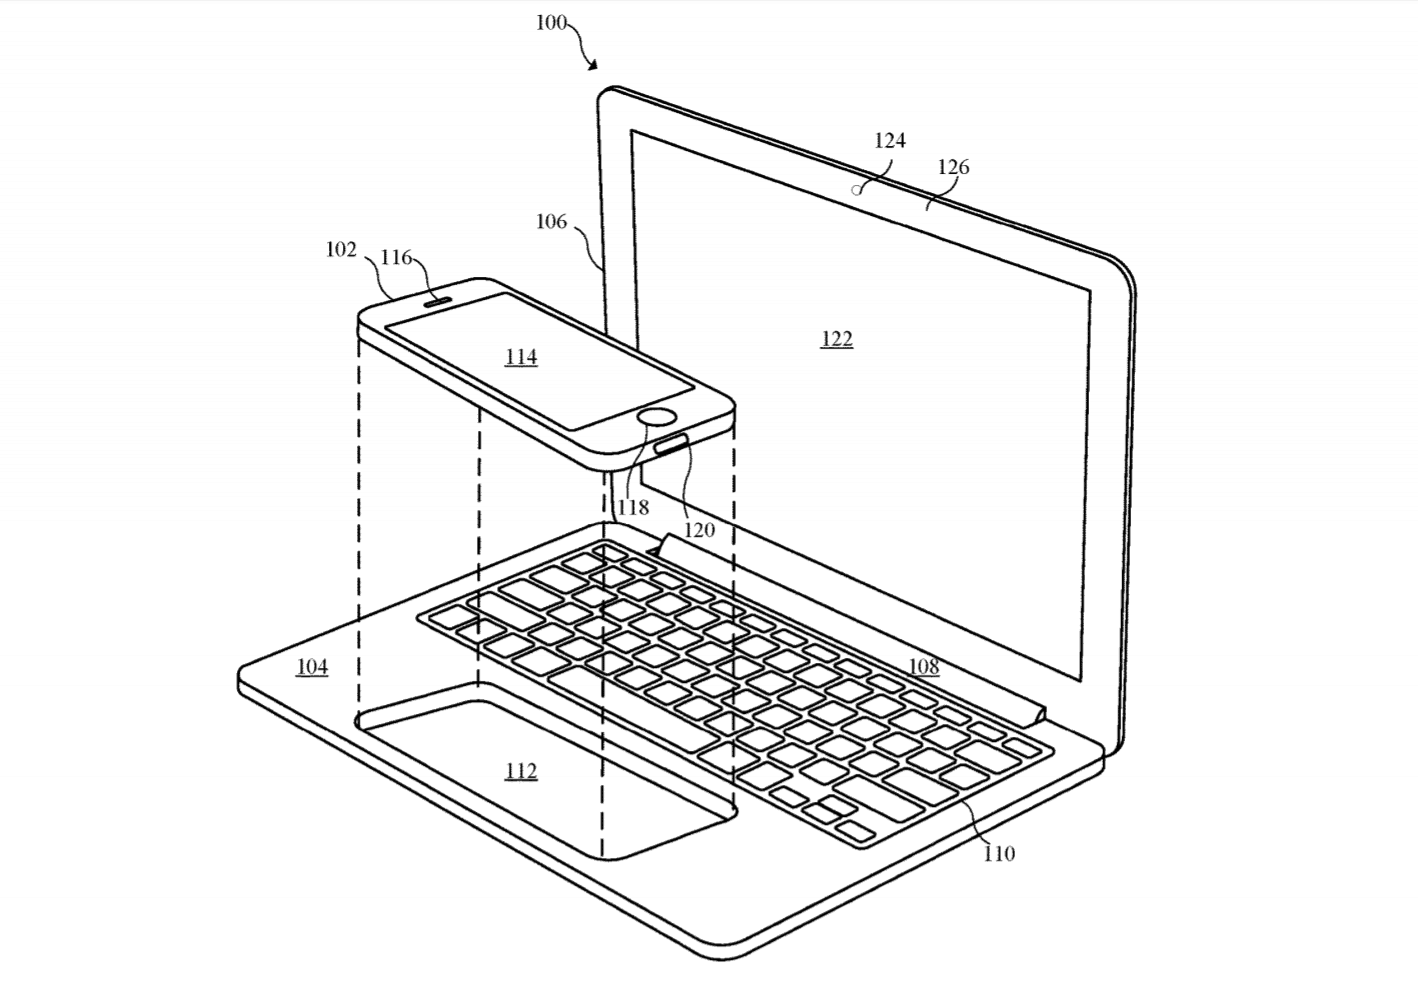 Apple Dock Could Turn Your Iphone Into A Macbook